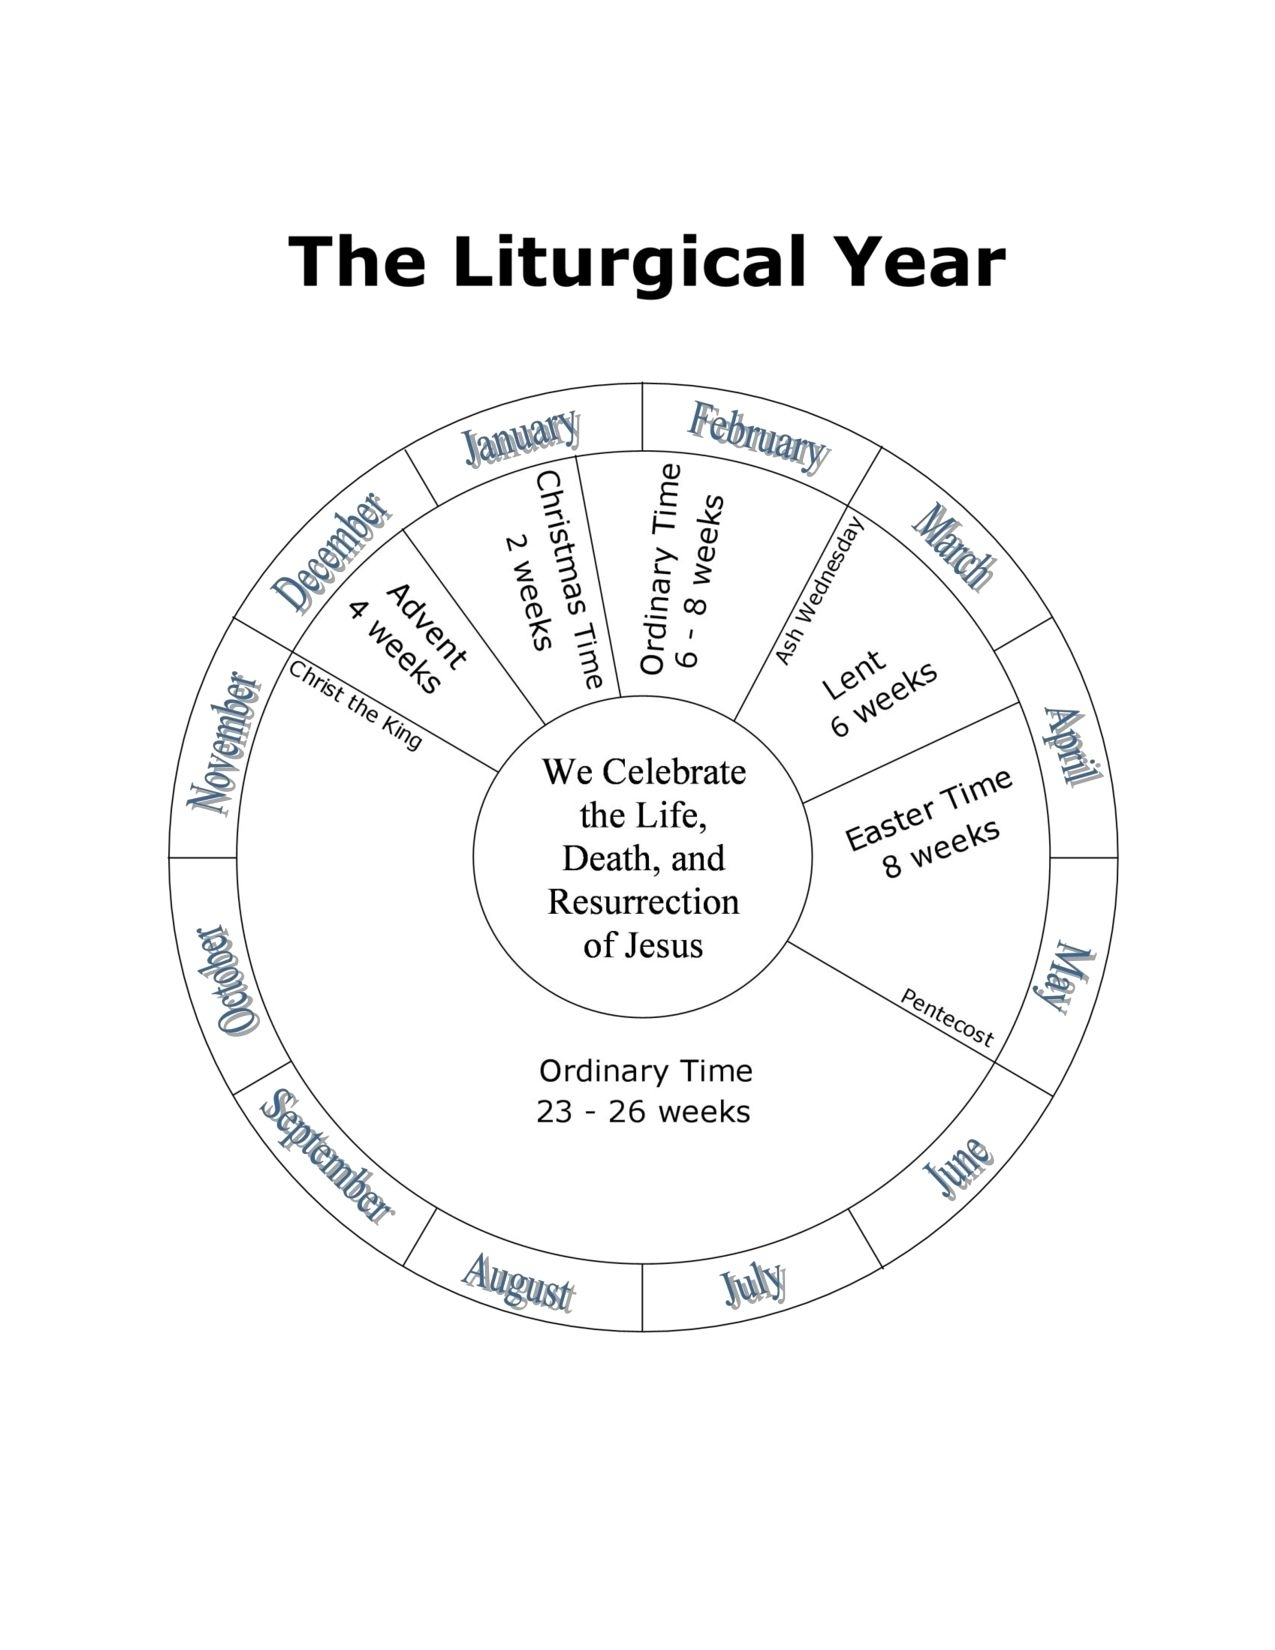 Liturgical Year 2020 Lesson Plan In 2020 | Catholic